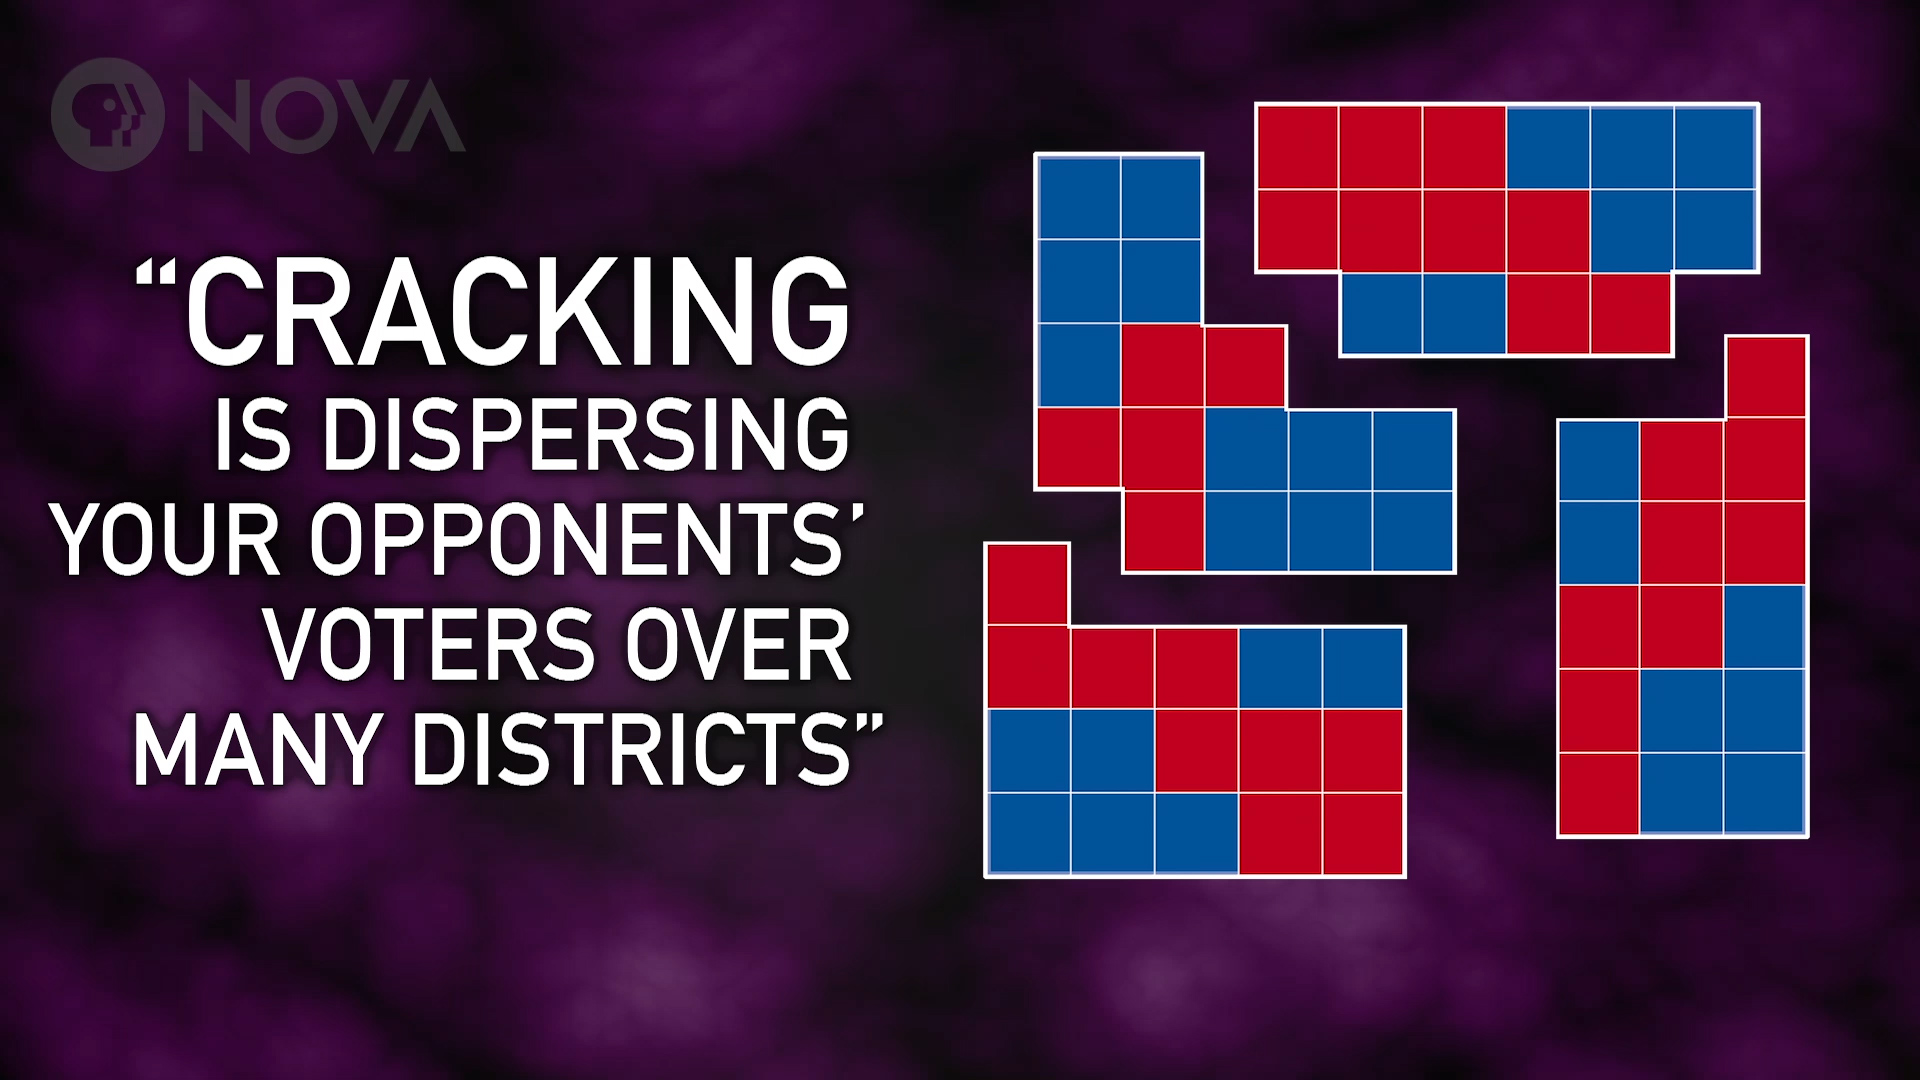 Gerrymandering - cracking is dispersing your opponents' voters over many districts.